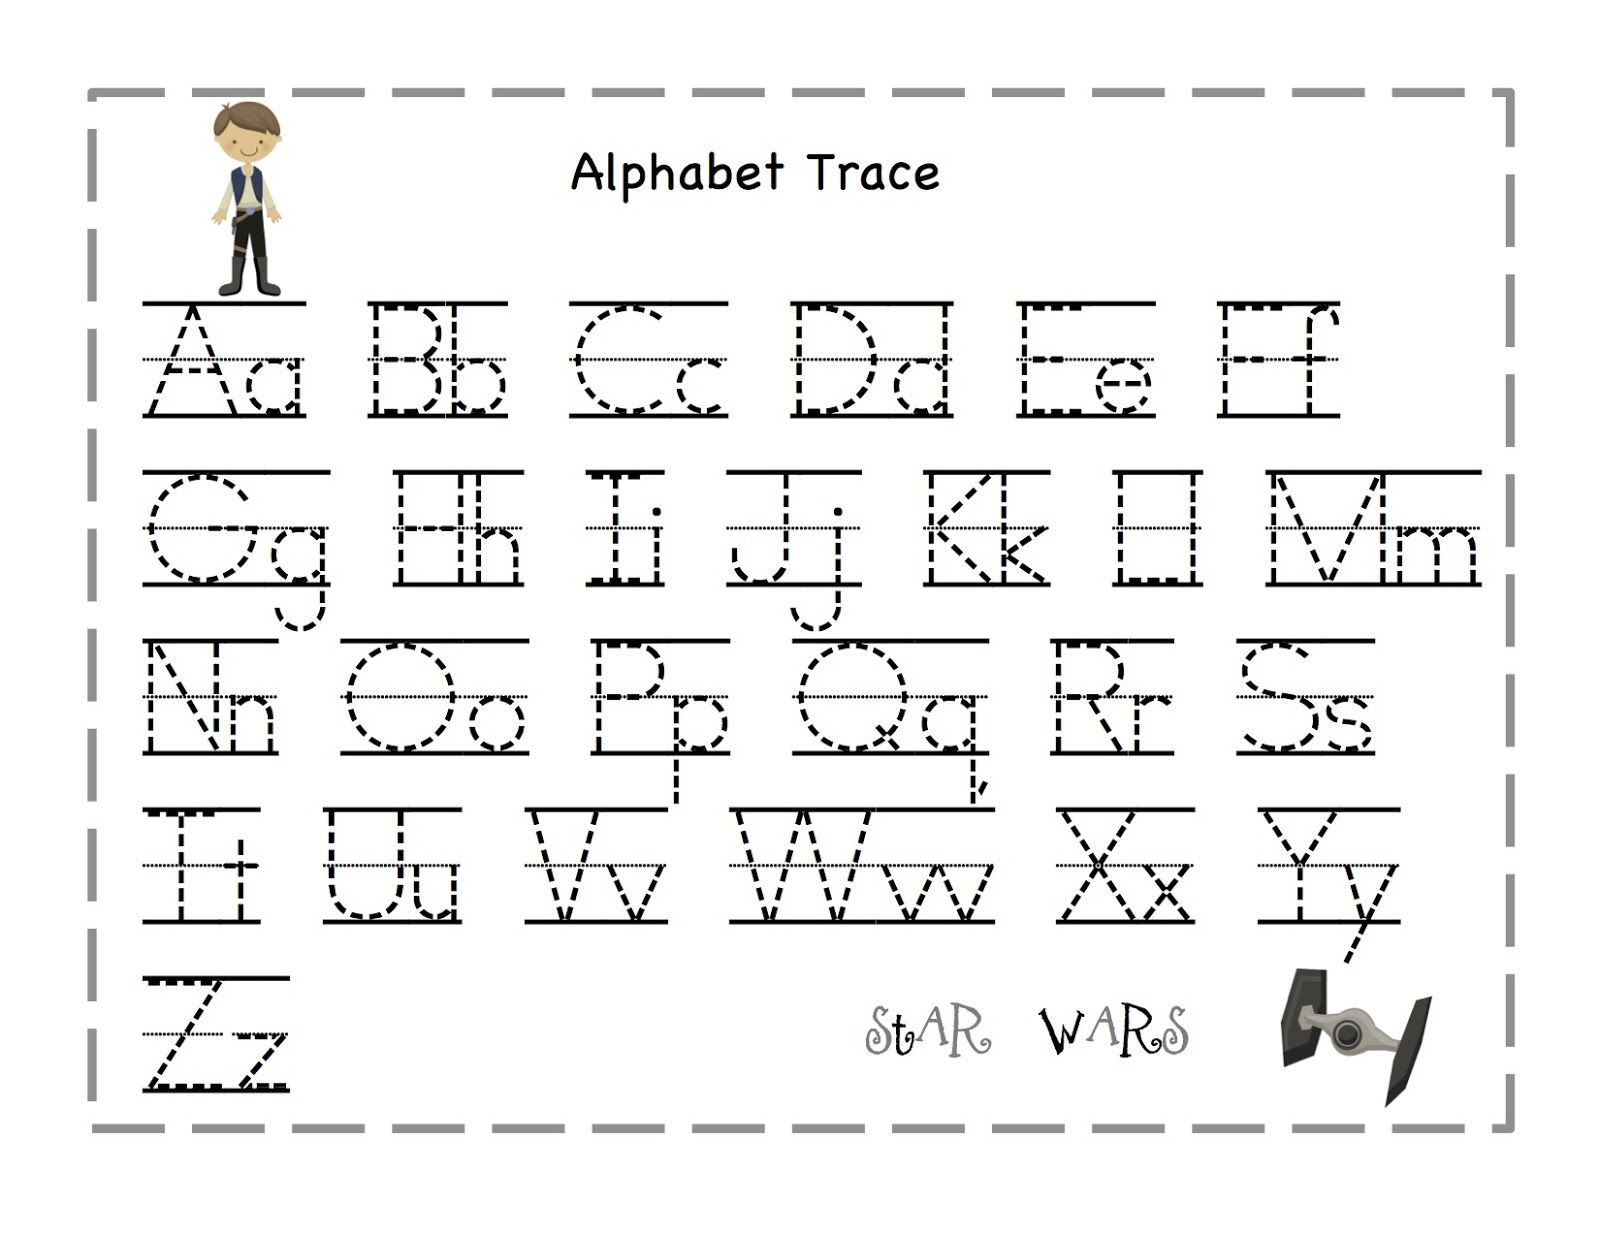 Free Printable Alphabet Letter Tracing Worksheets | Angeline - Free Printable Alphabet Tracing Worksheets